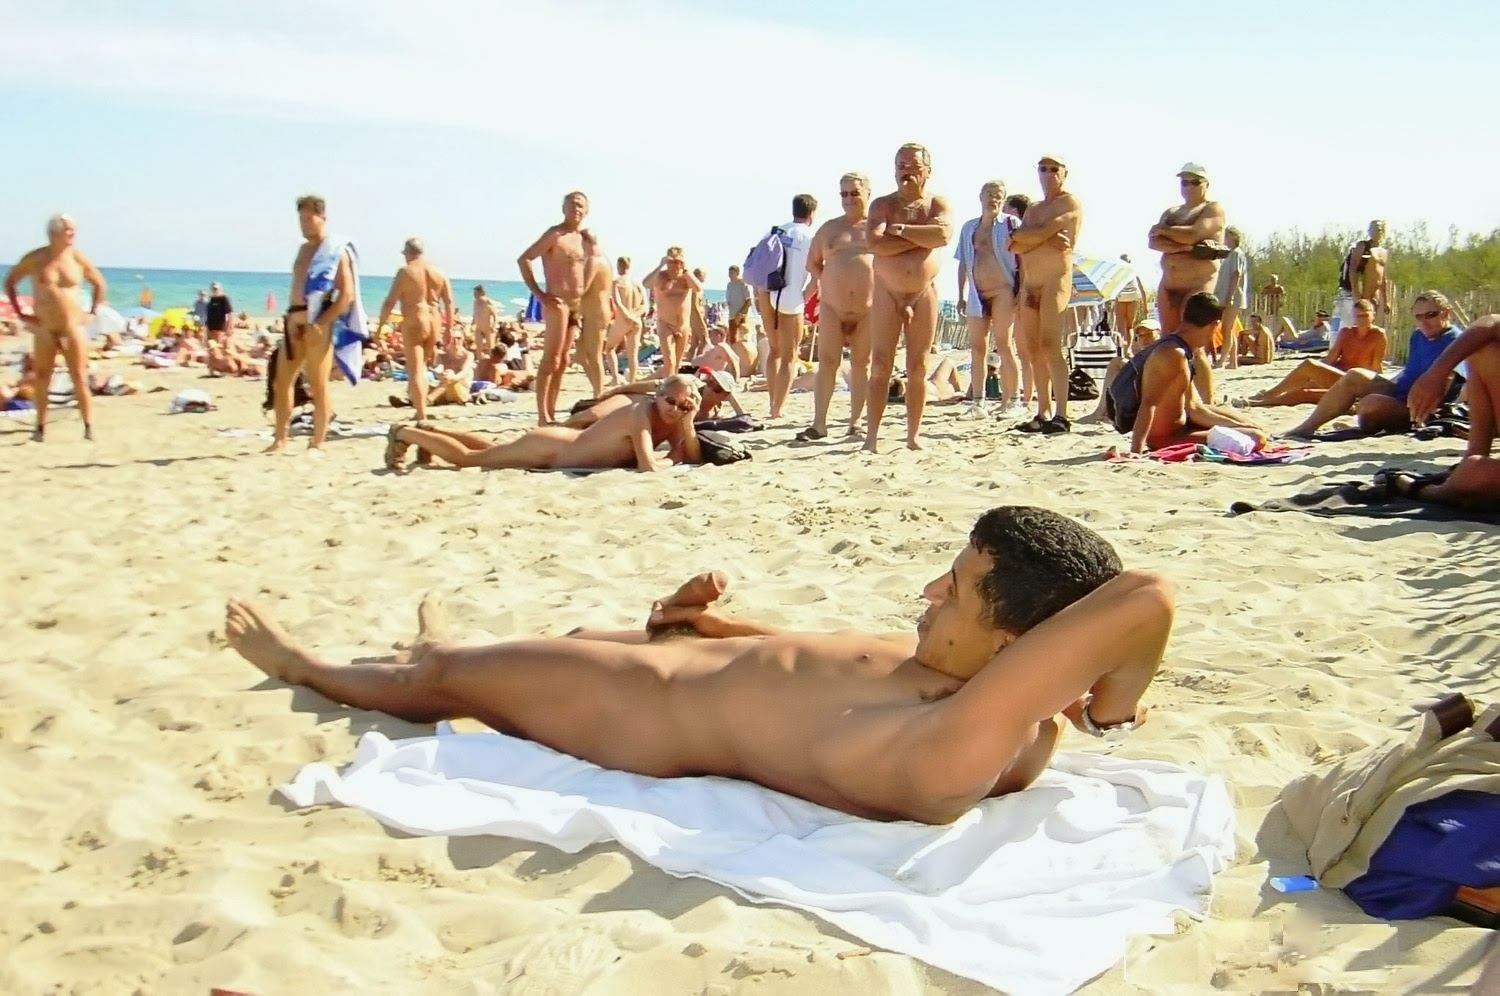 Naked Male In Beach